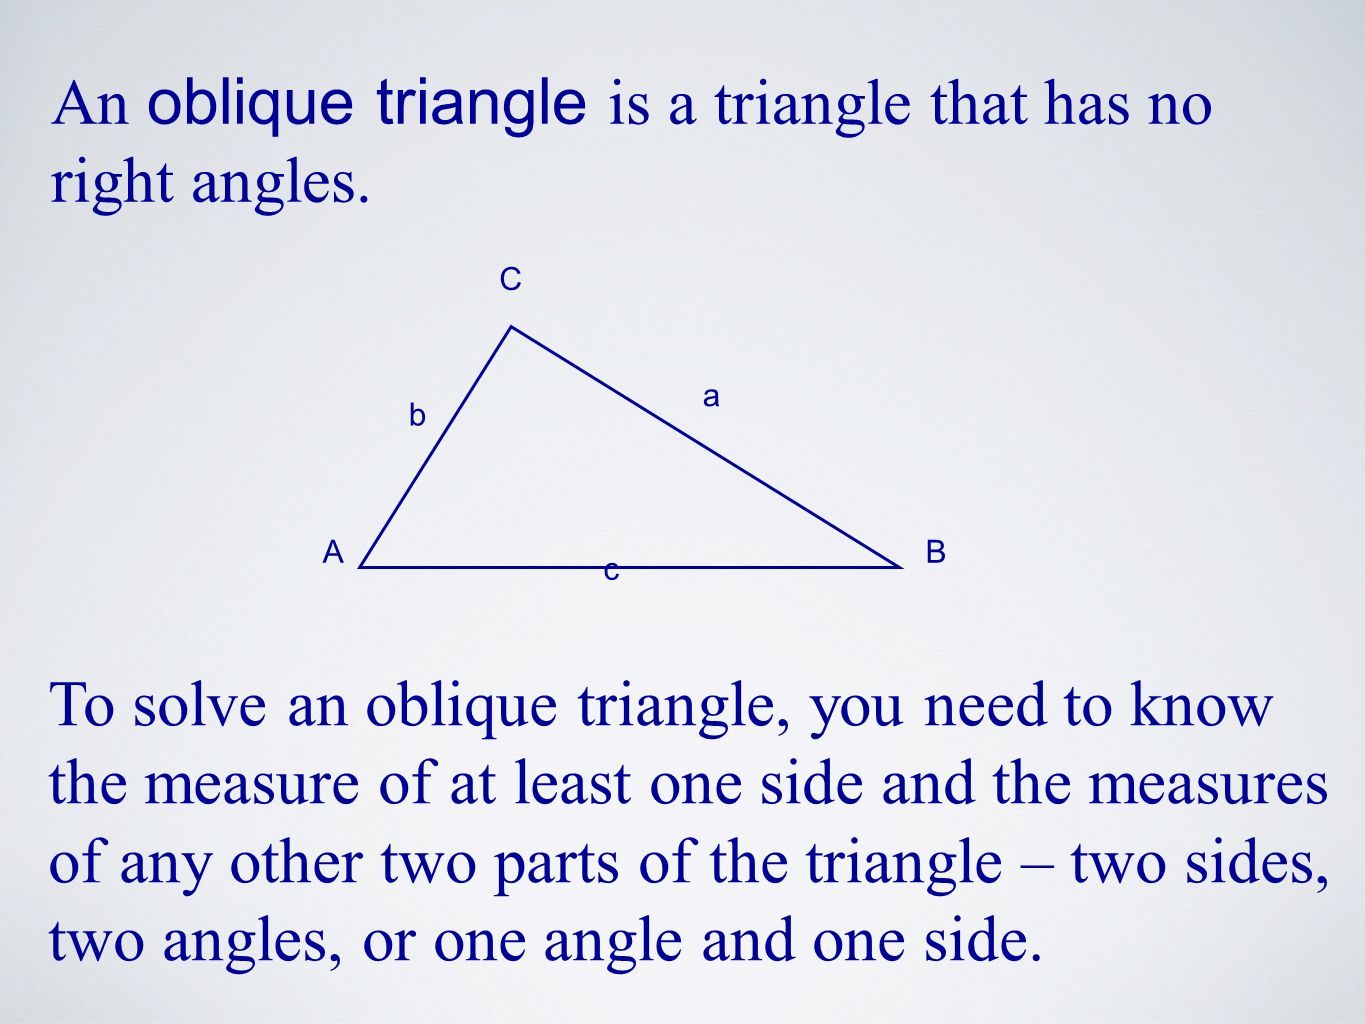 An oblique triangle is a triangle that has no right angles.